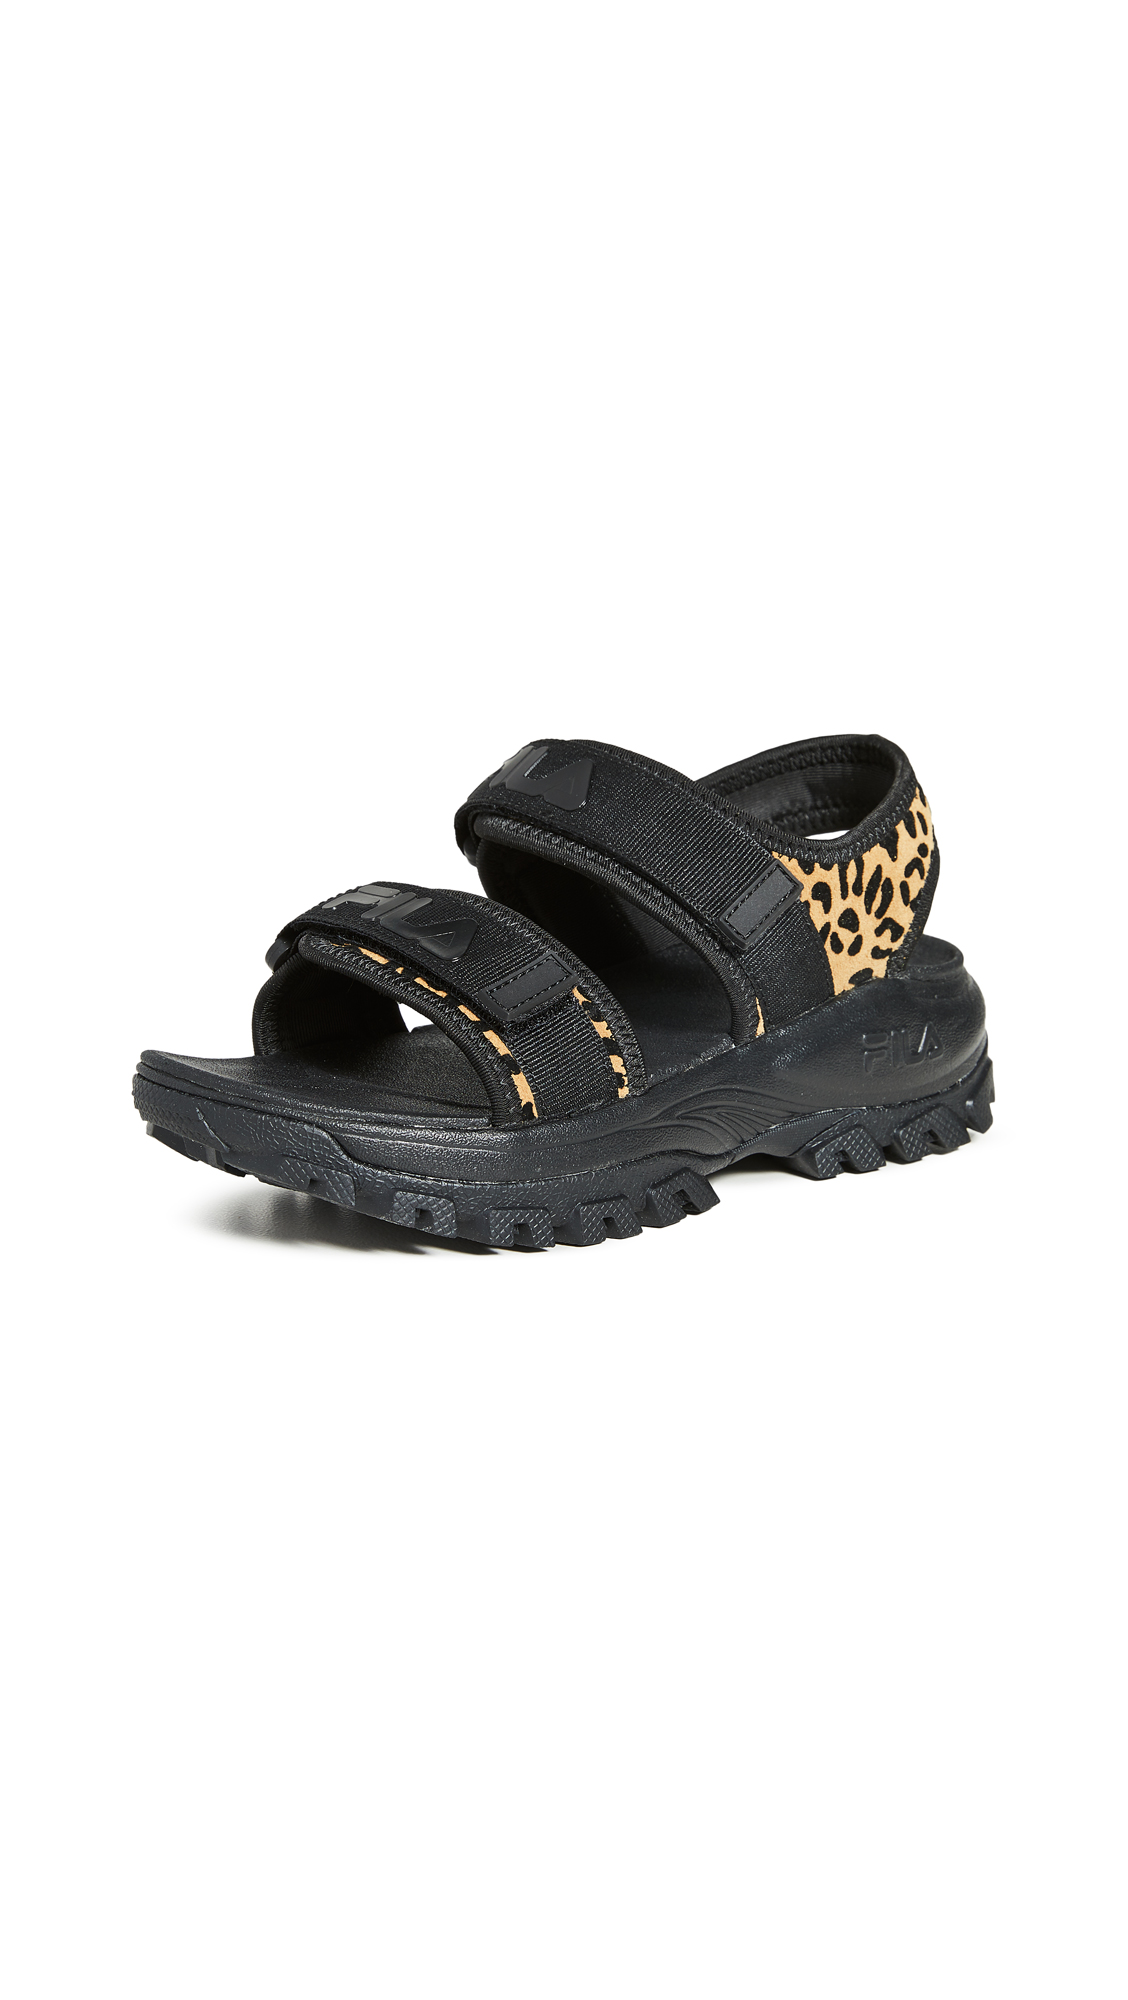 Fila Outdoor Animal Print Sandals - 30% Off Sale